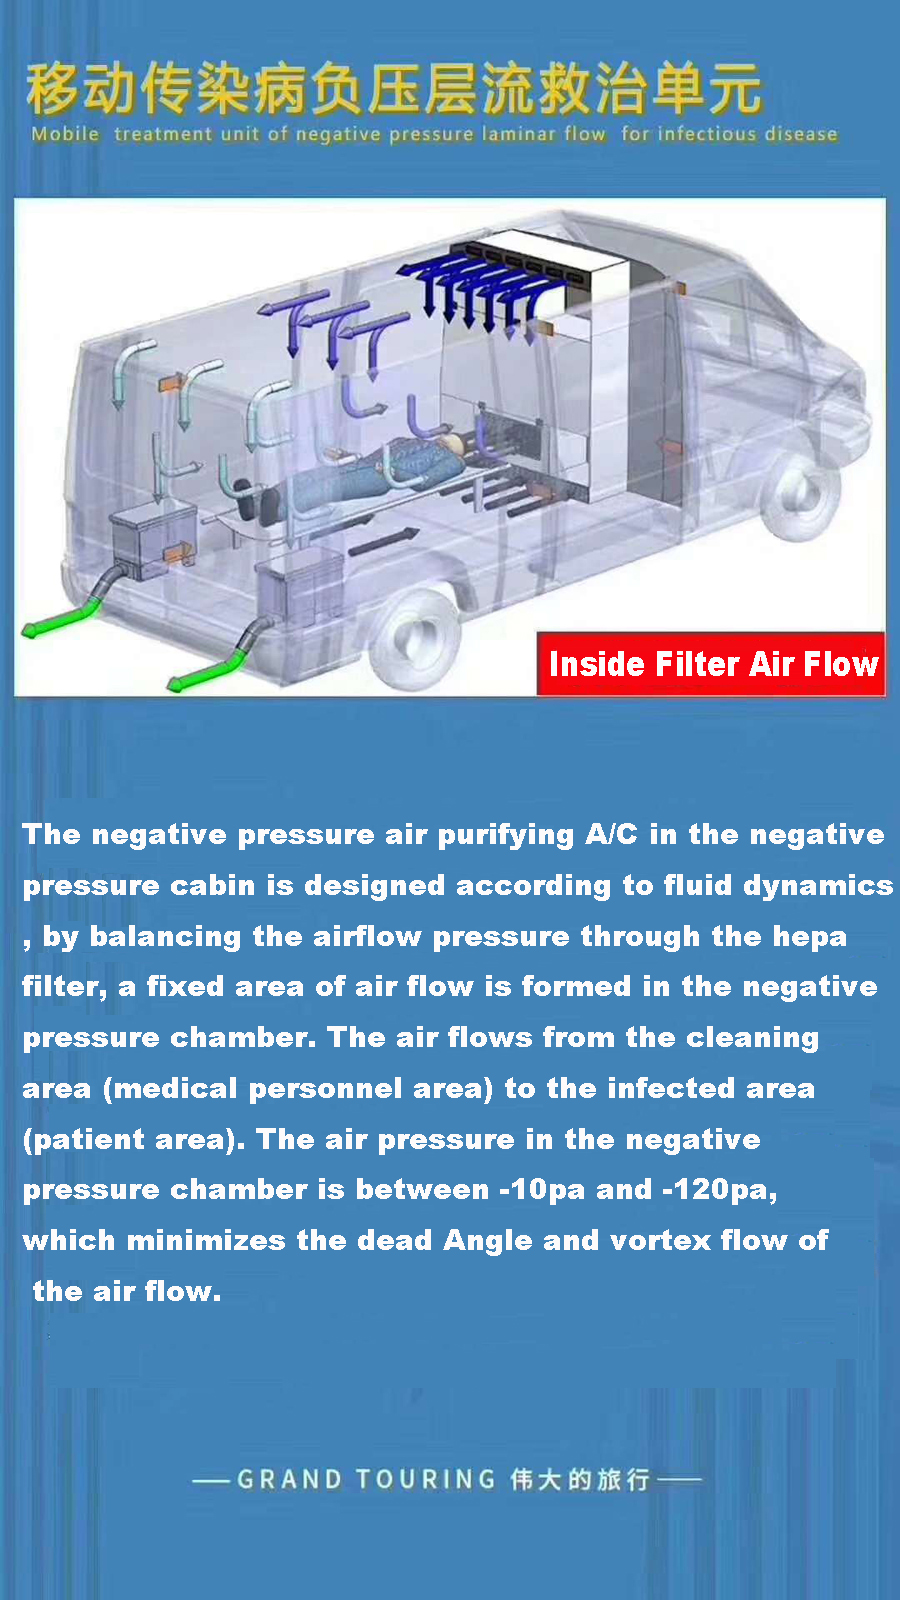 negative pressure unit for infections disease